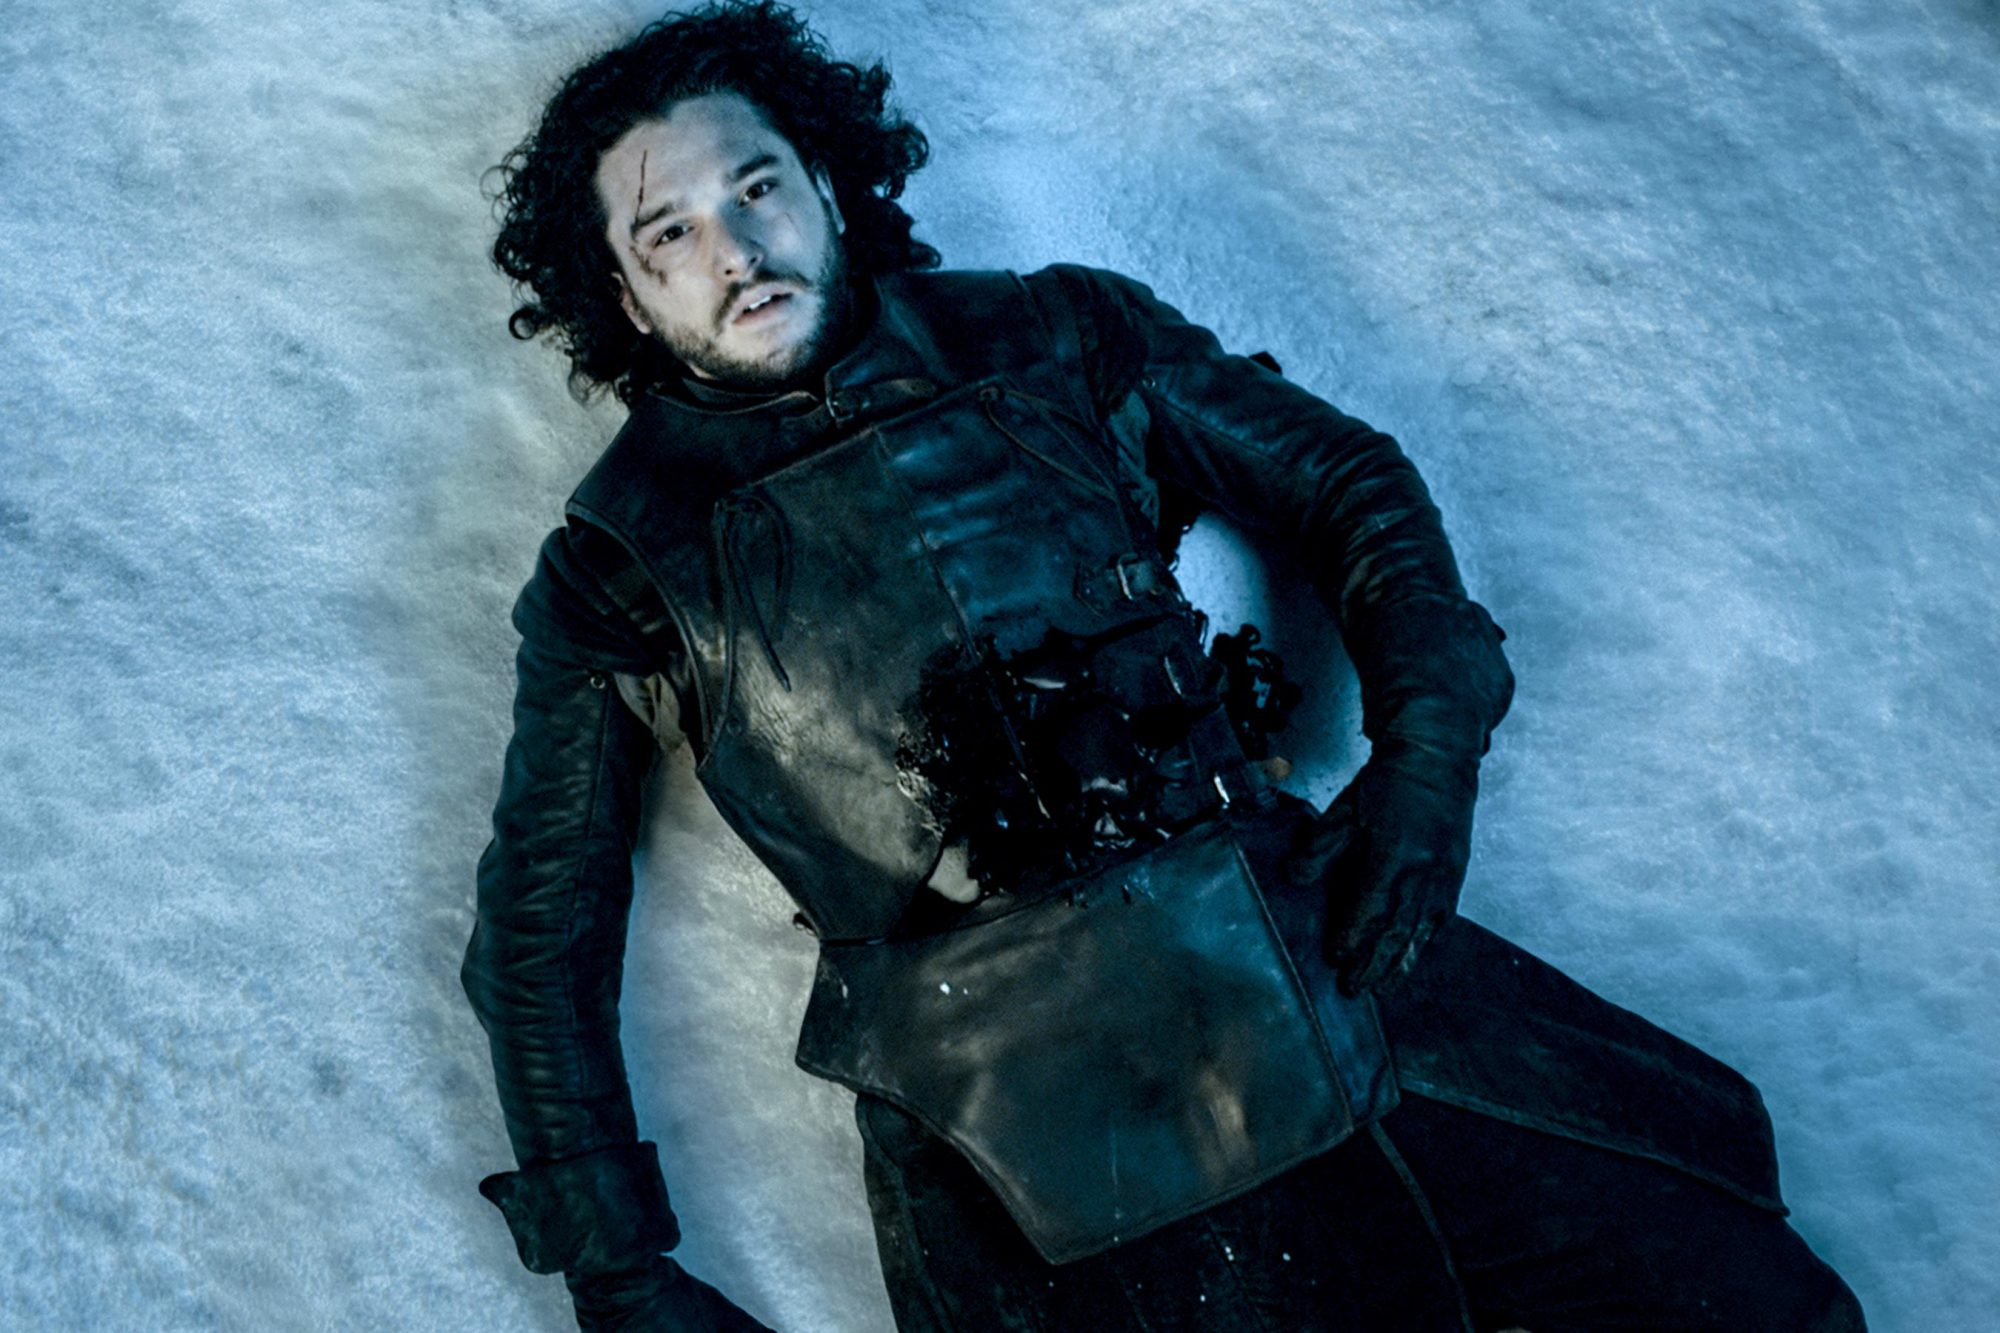 Game Of ThronesSeason 5 Episode 10 Season FinaleKit Harington as Jon Snow